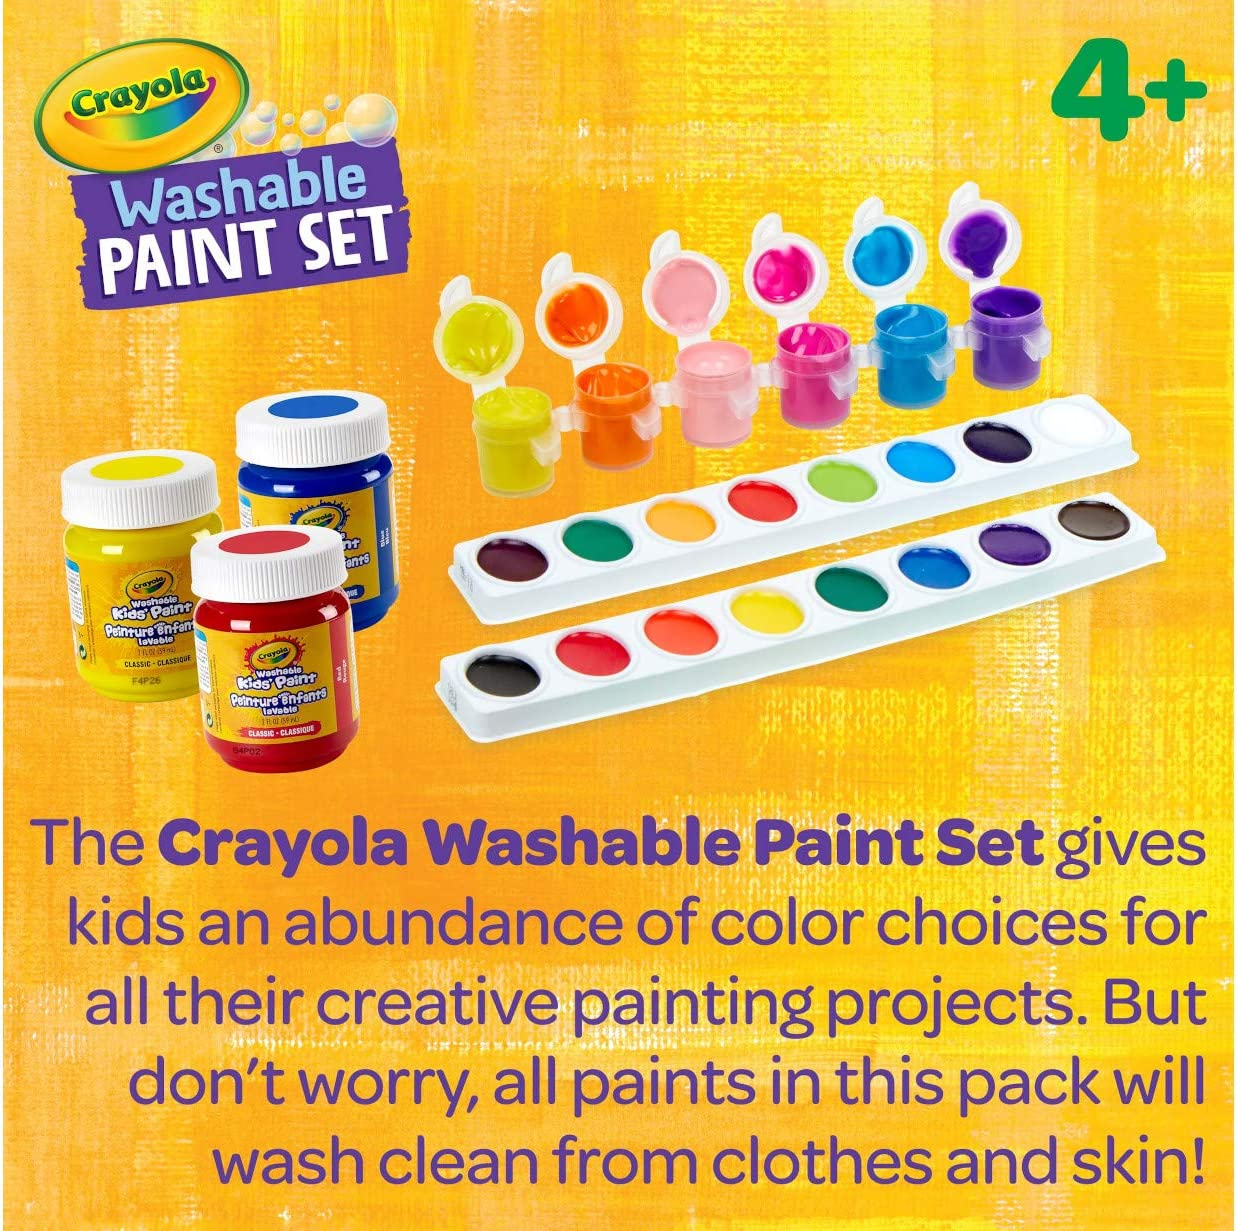 6 5 4 Crayola Washable Paint Set Over 50 Pieces 7 Gift for Kids